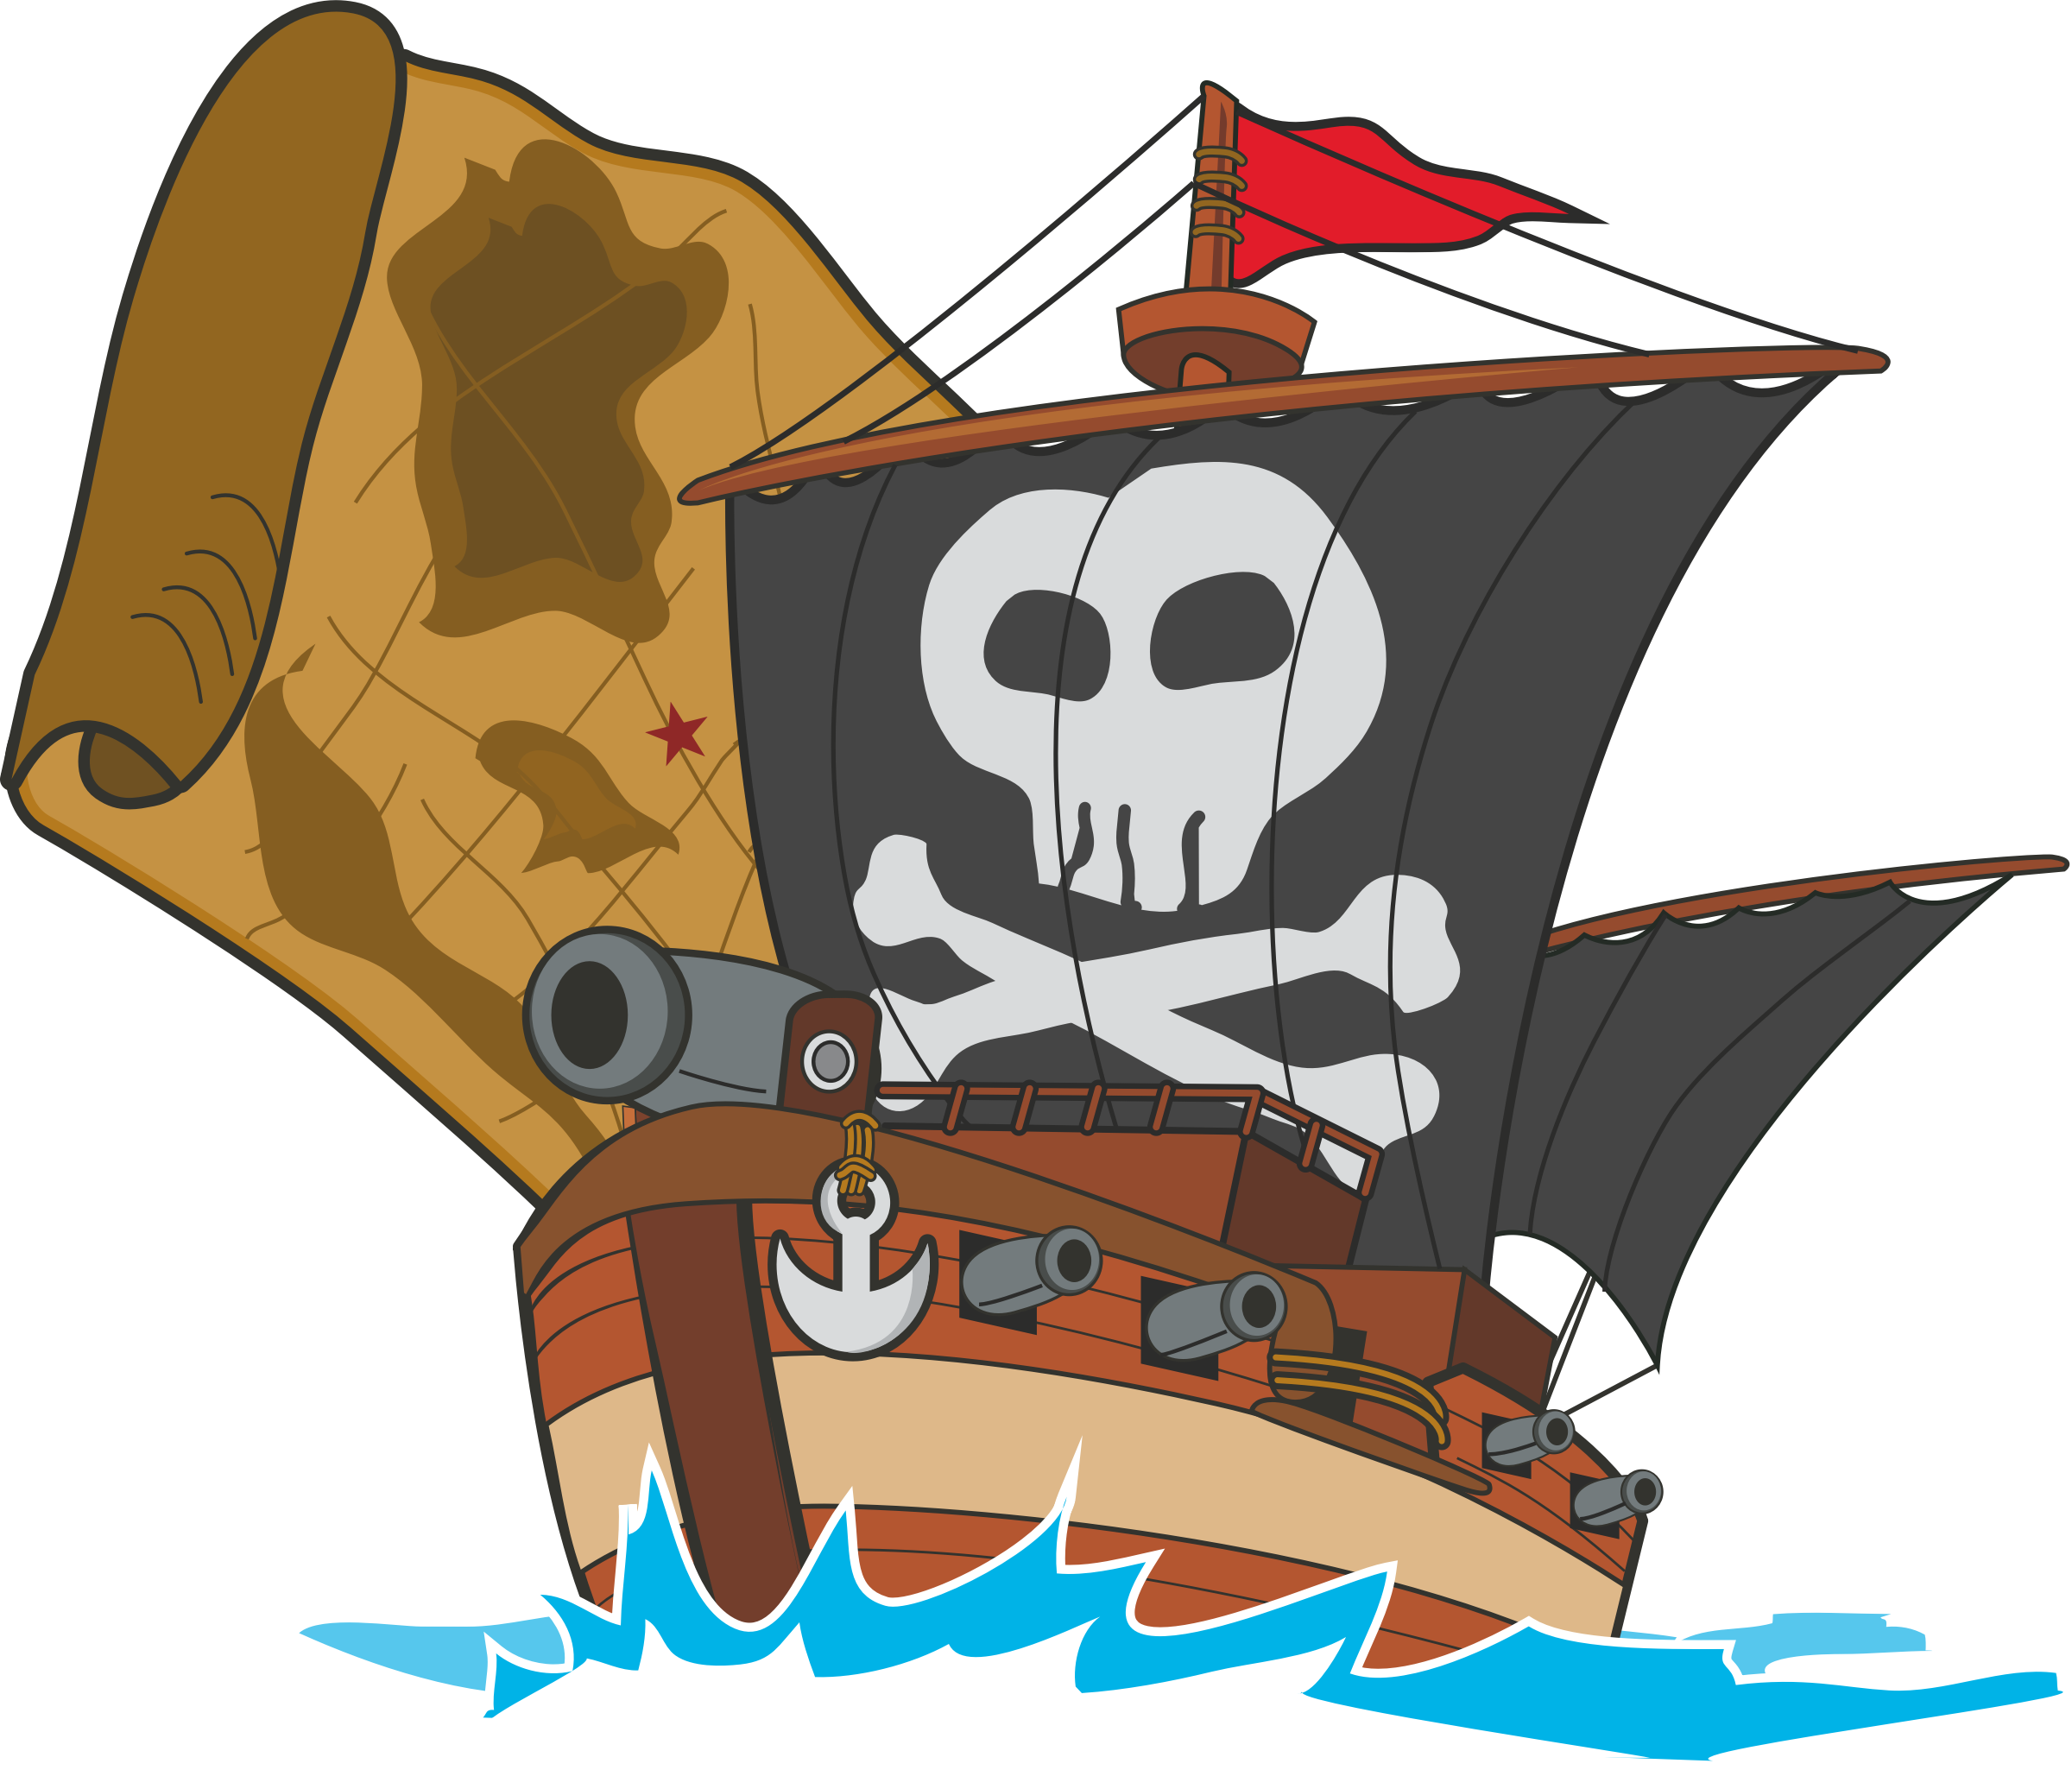 Pirate ship big image. Medieval clipart boat image download